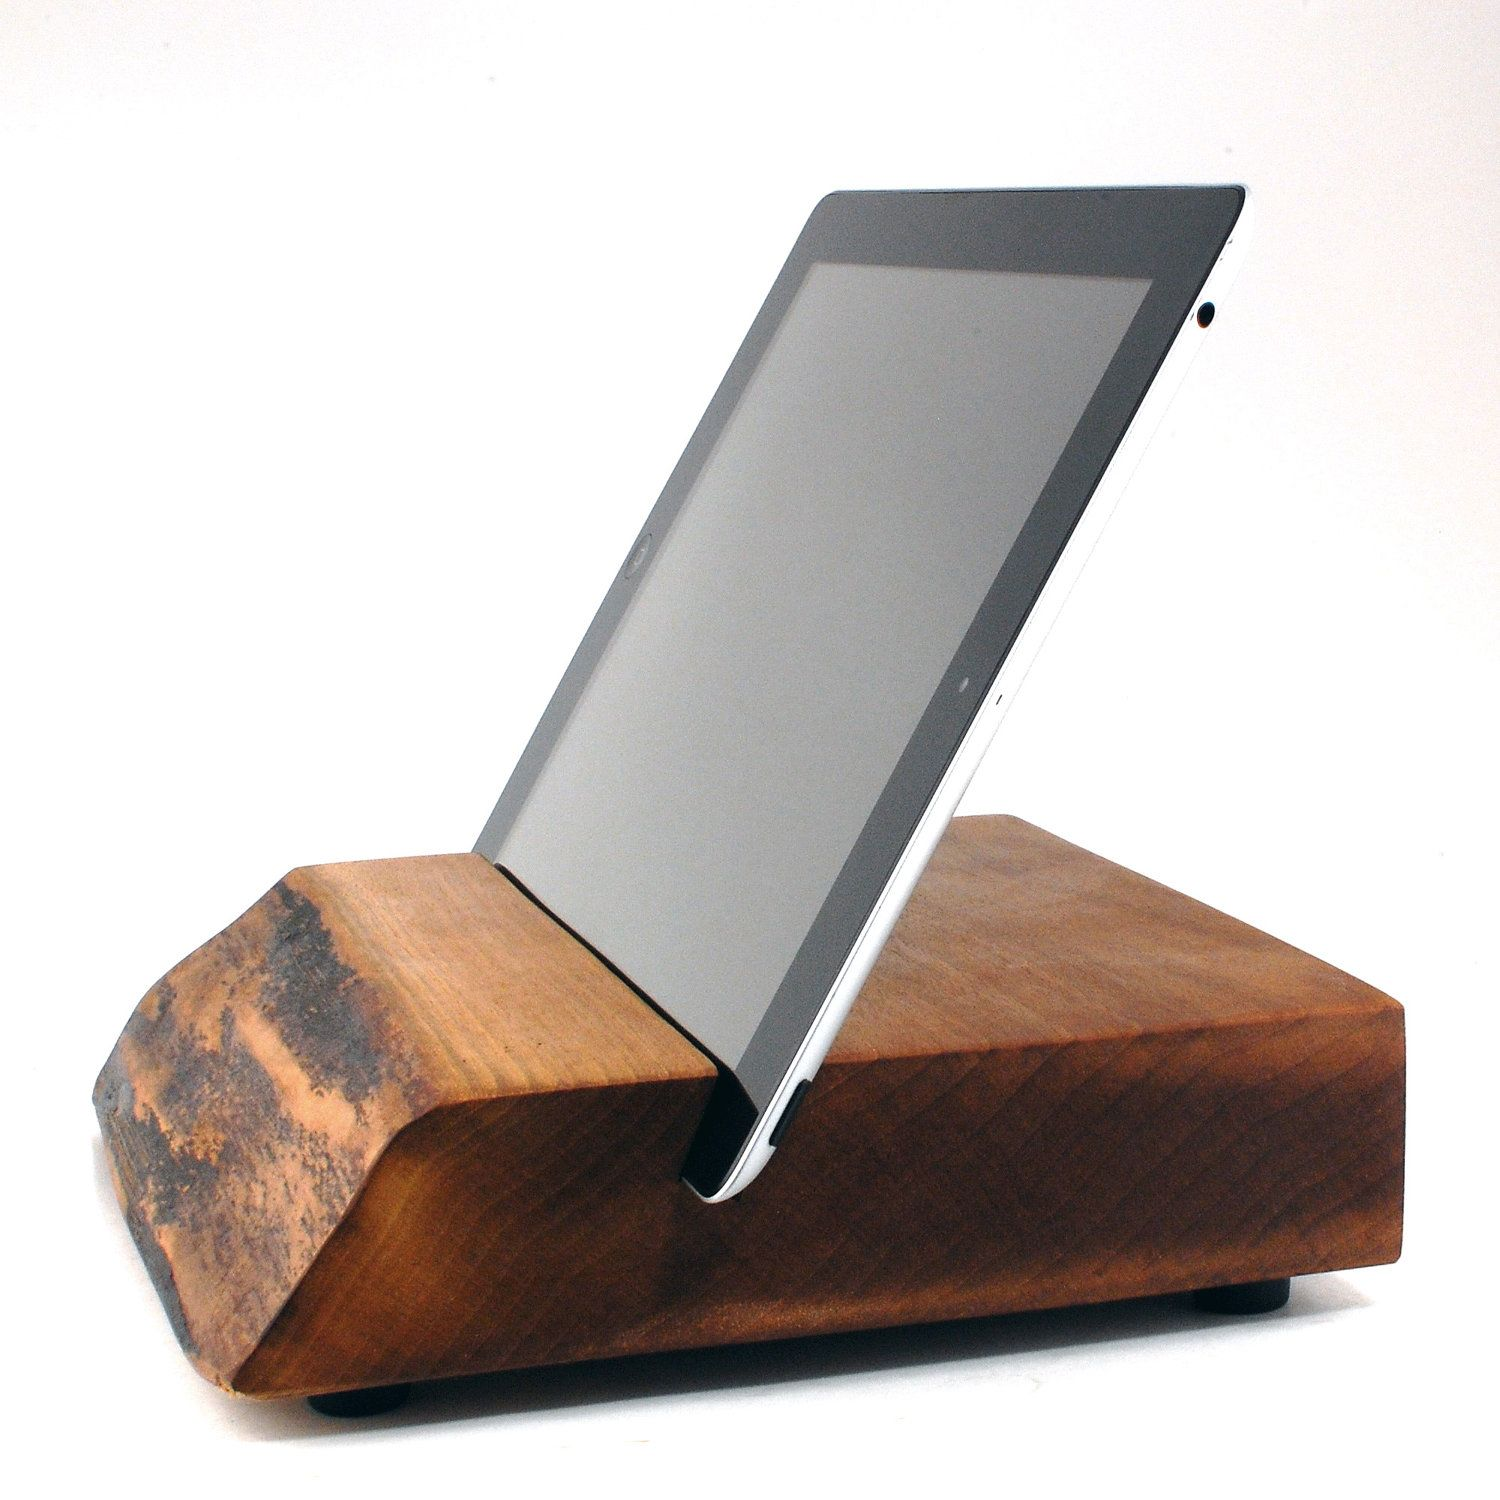 Wood iPad Stand from Block & Sons Co. Article No. 1222